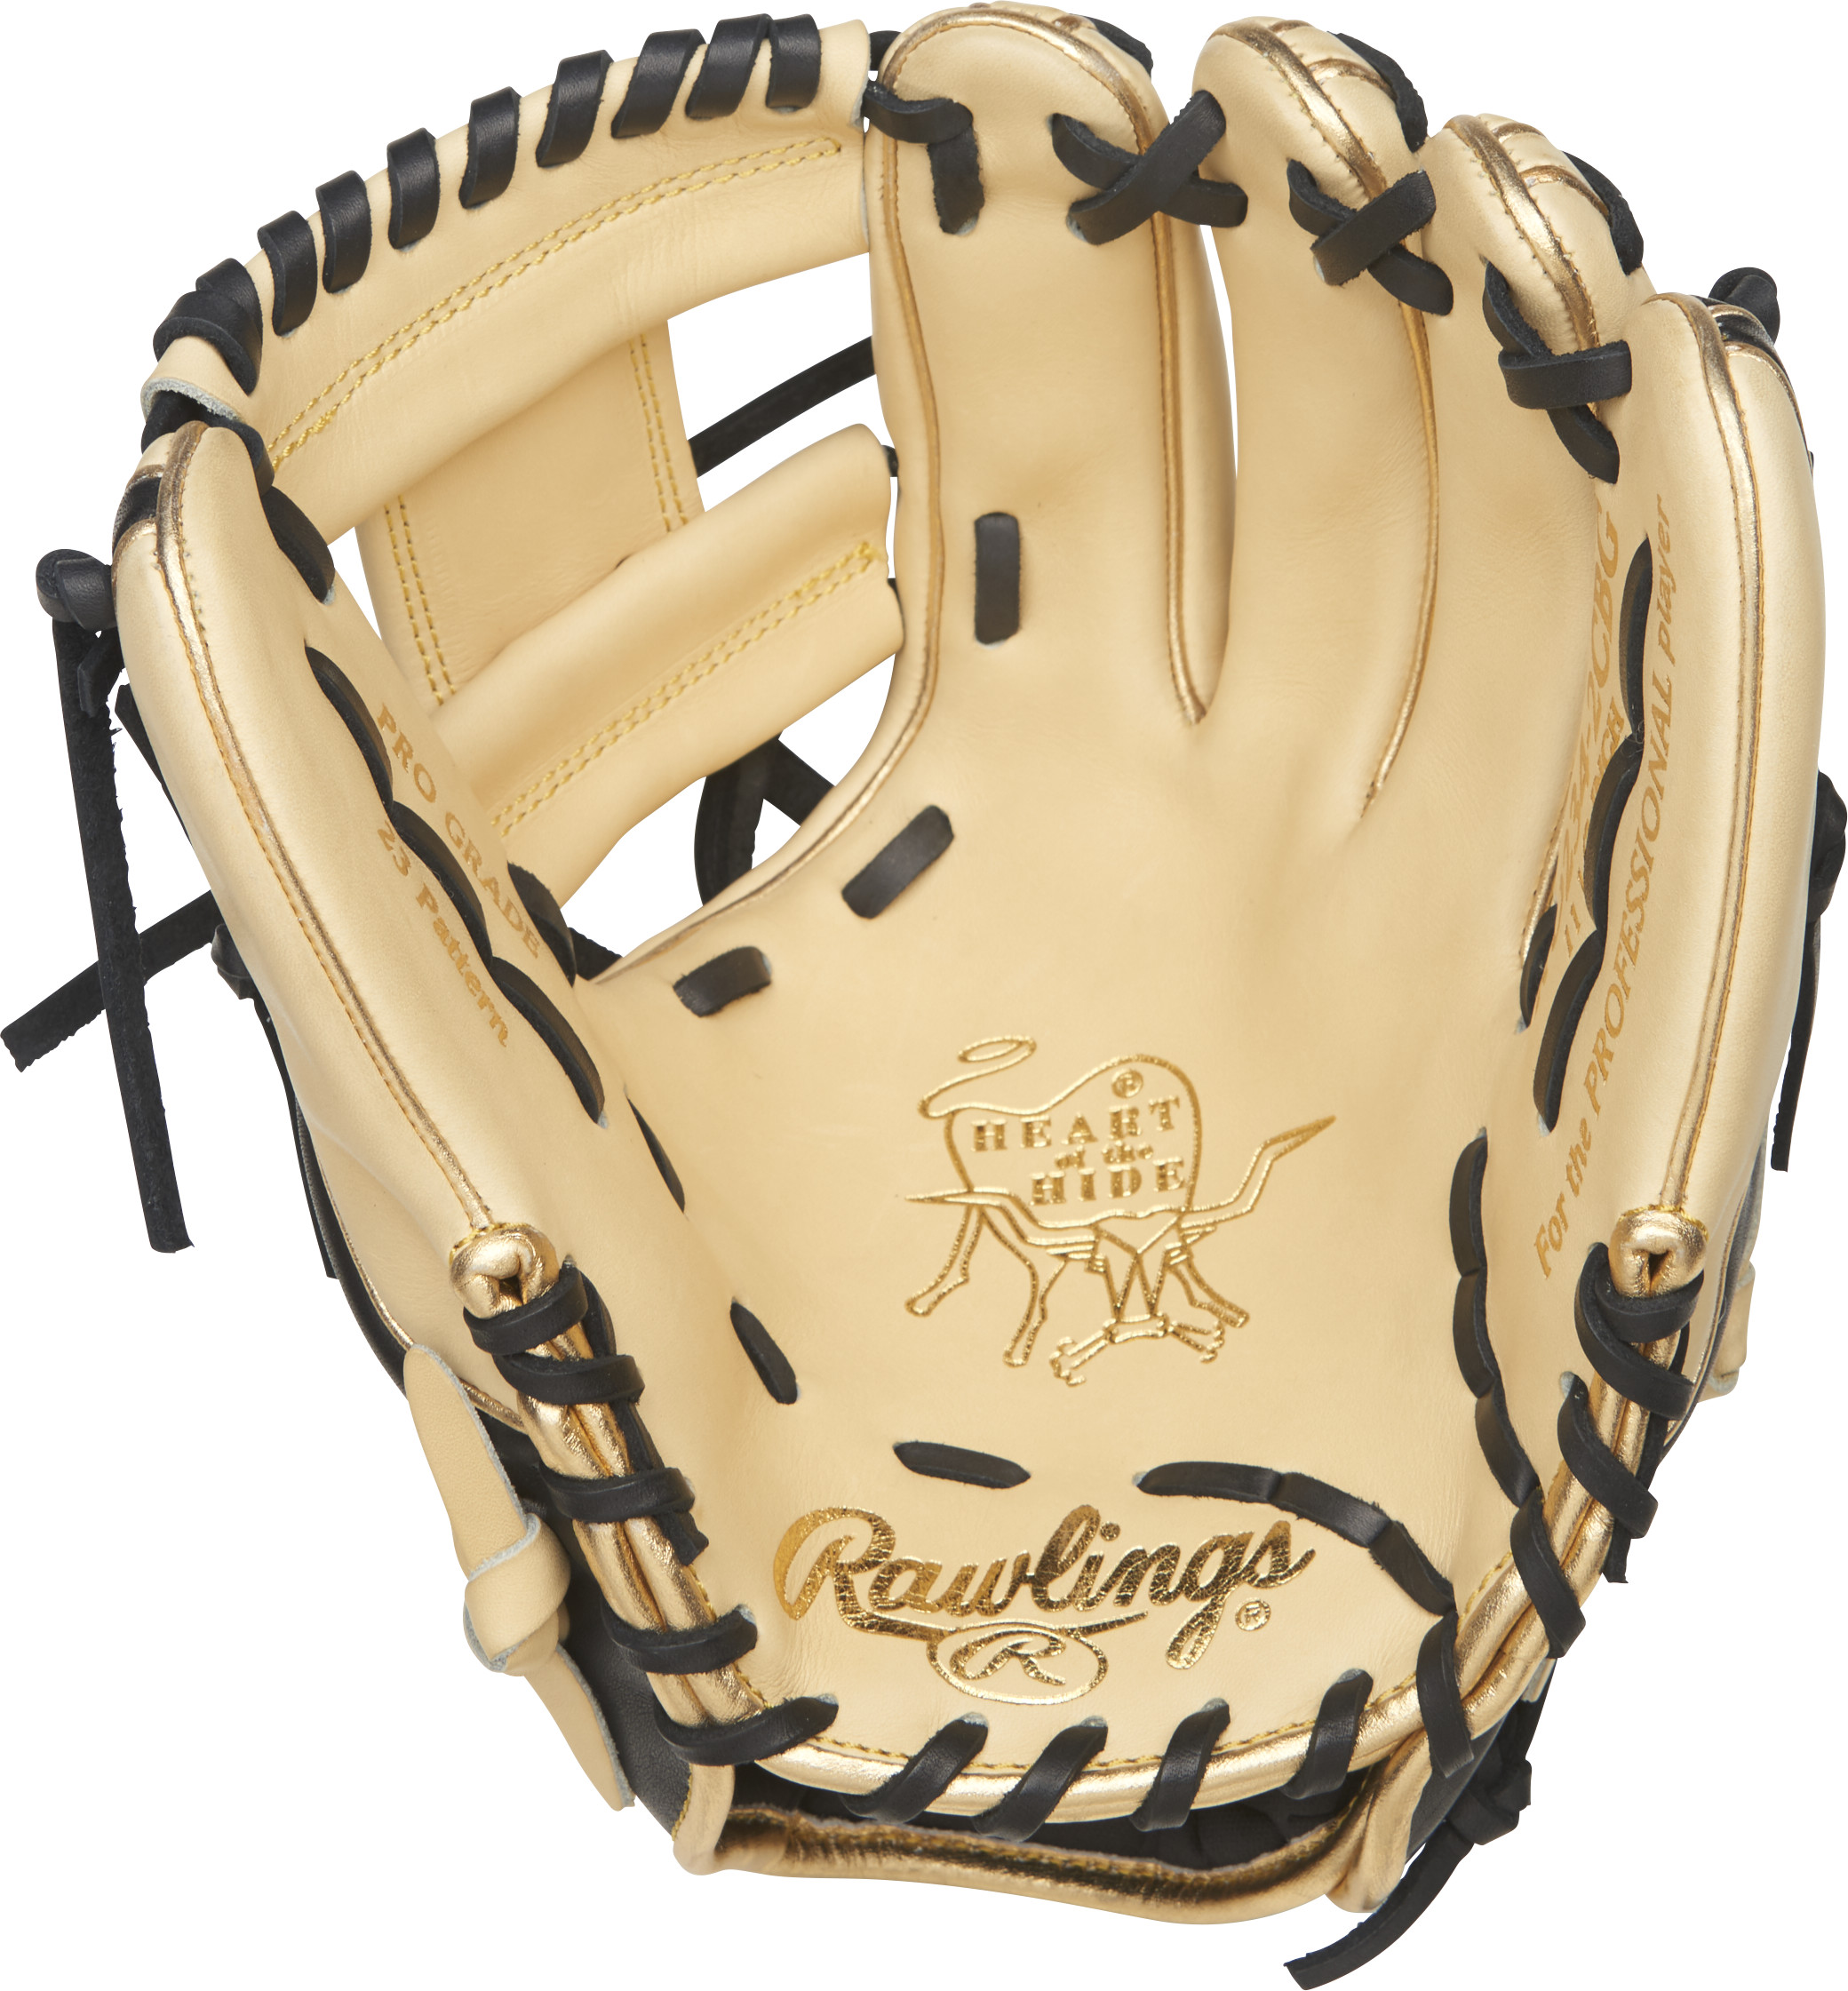 http://www.bestbatdeals.com/images/gloves/rawlings/PRO234-2CBG-1.jpg